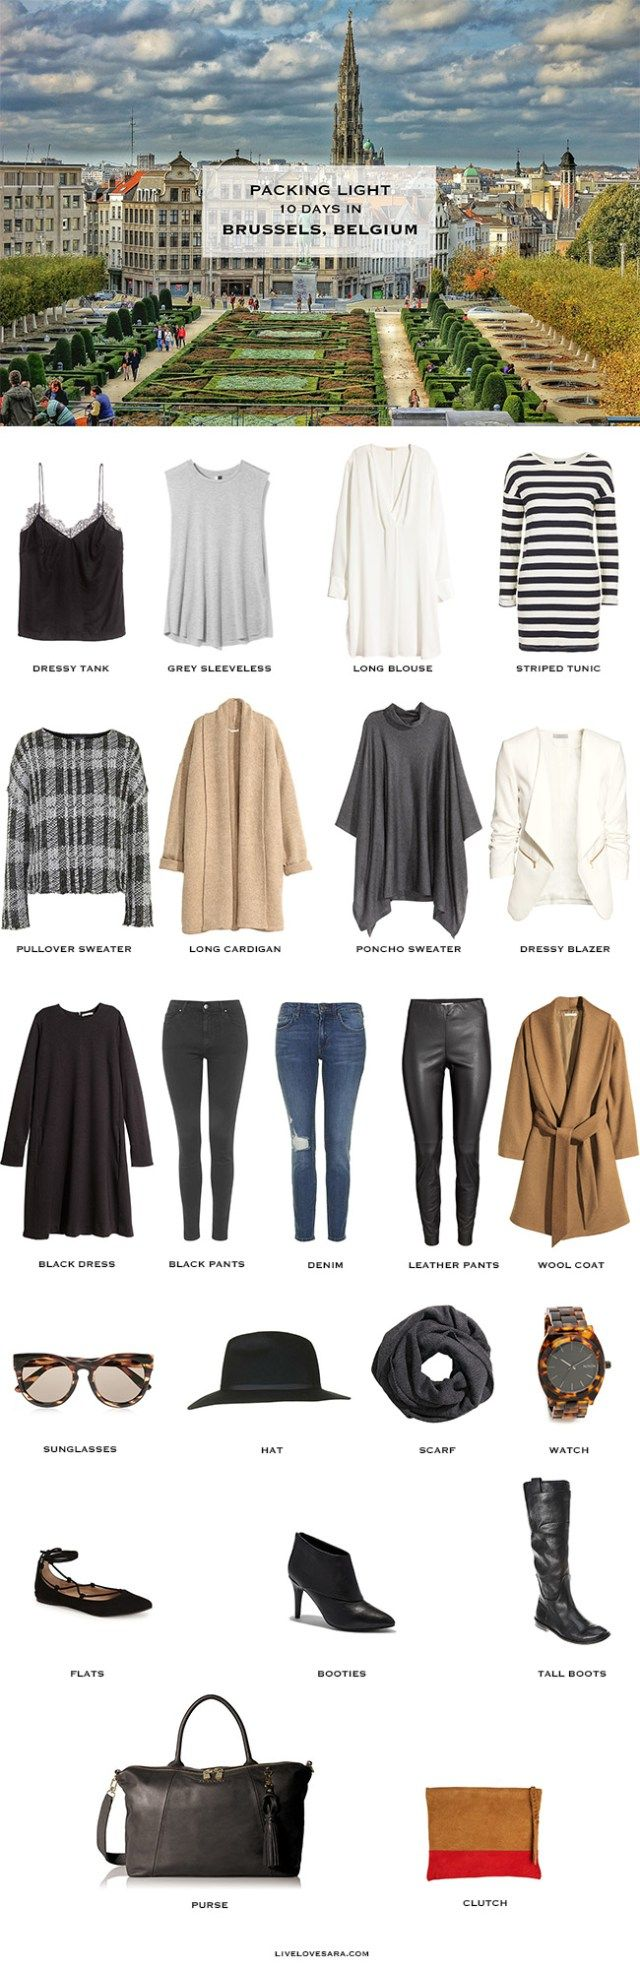 Brussels Belgium Packing List + outfit options here http://livelovesara.com/2015/10/what-to-wear-for-brussels-belgium/?relatedposts_hit=1&relatedposts_origin=1793&relatedposts_position=0